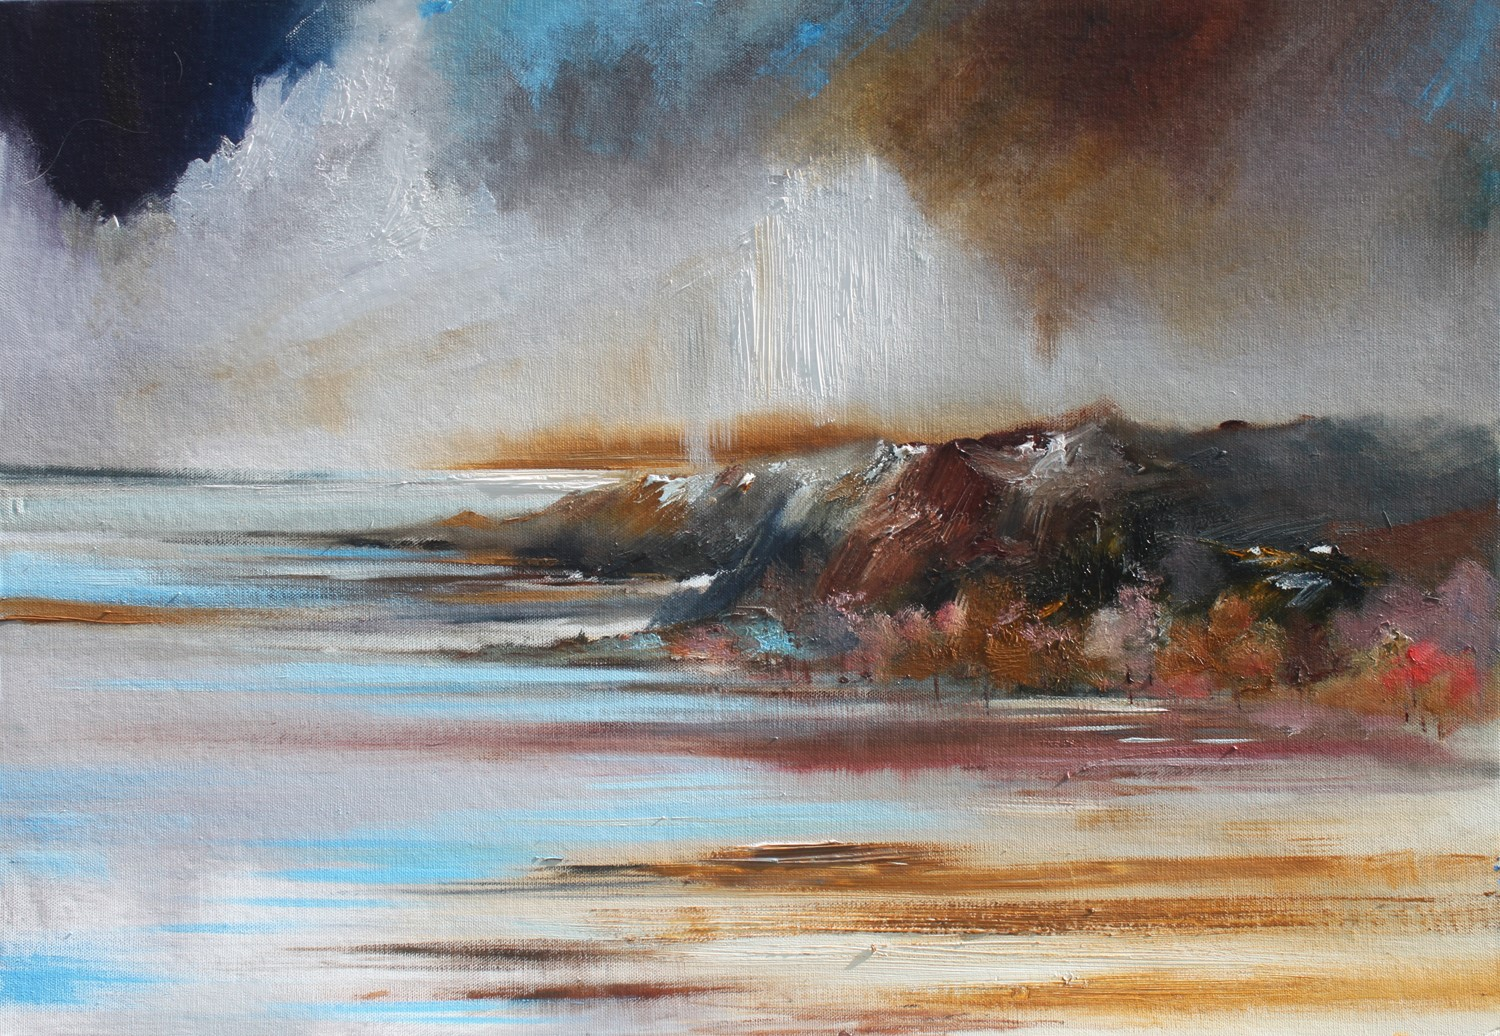 'The Tide is Out' by artist Rosanne Barr